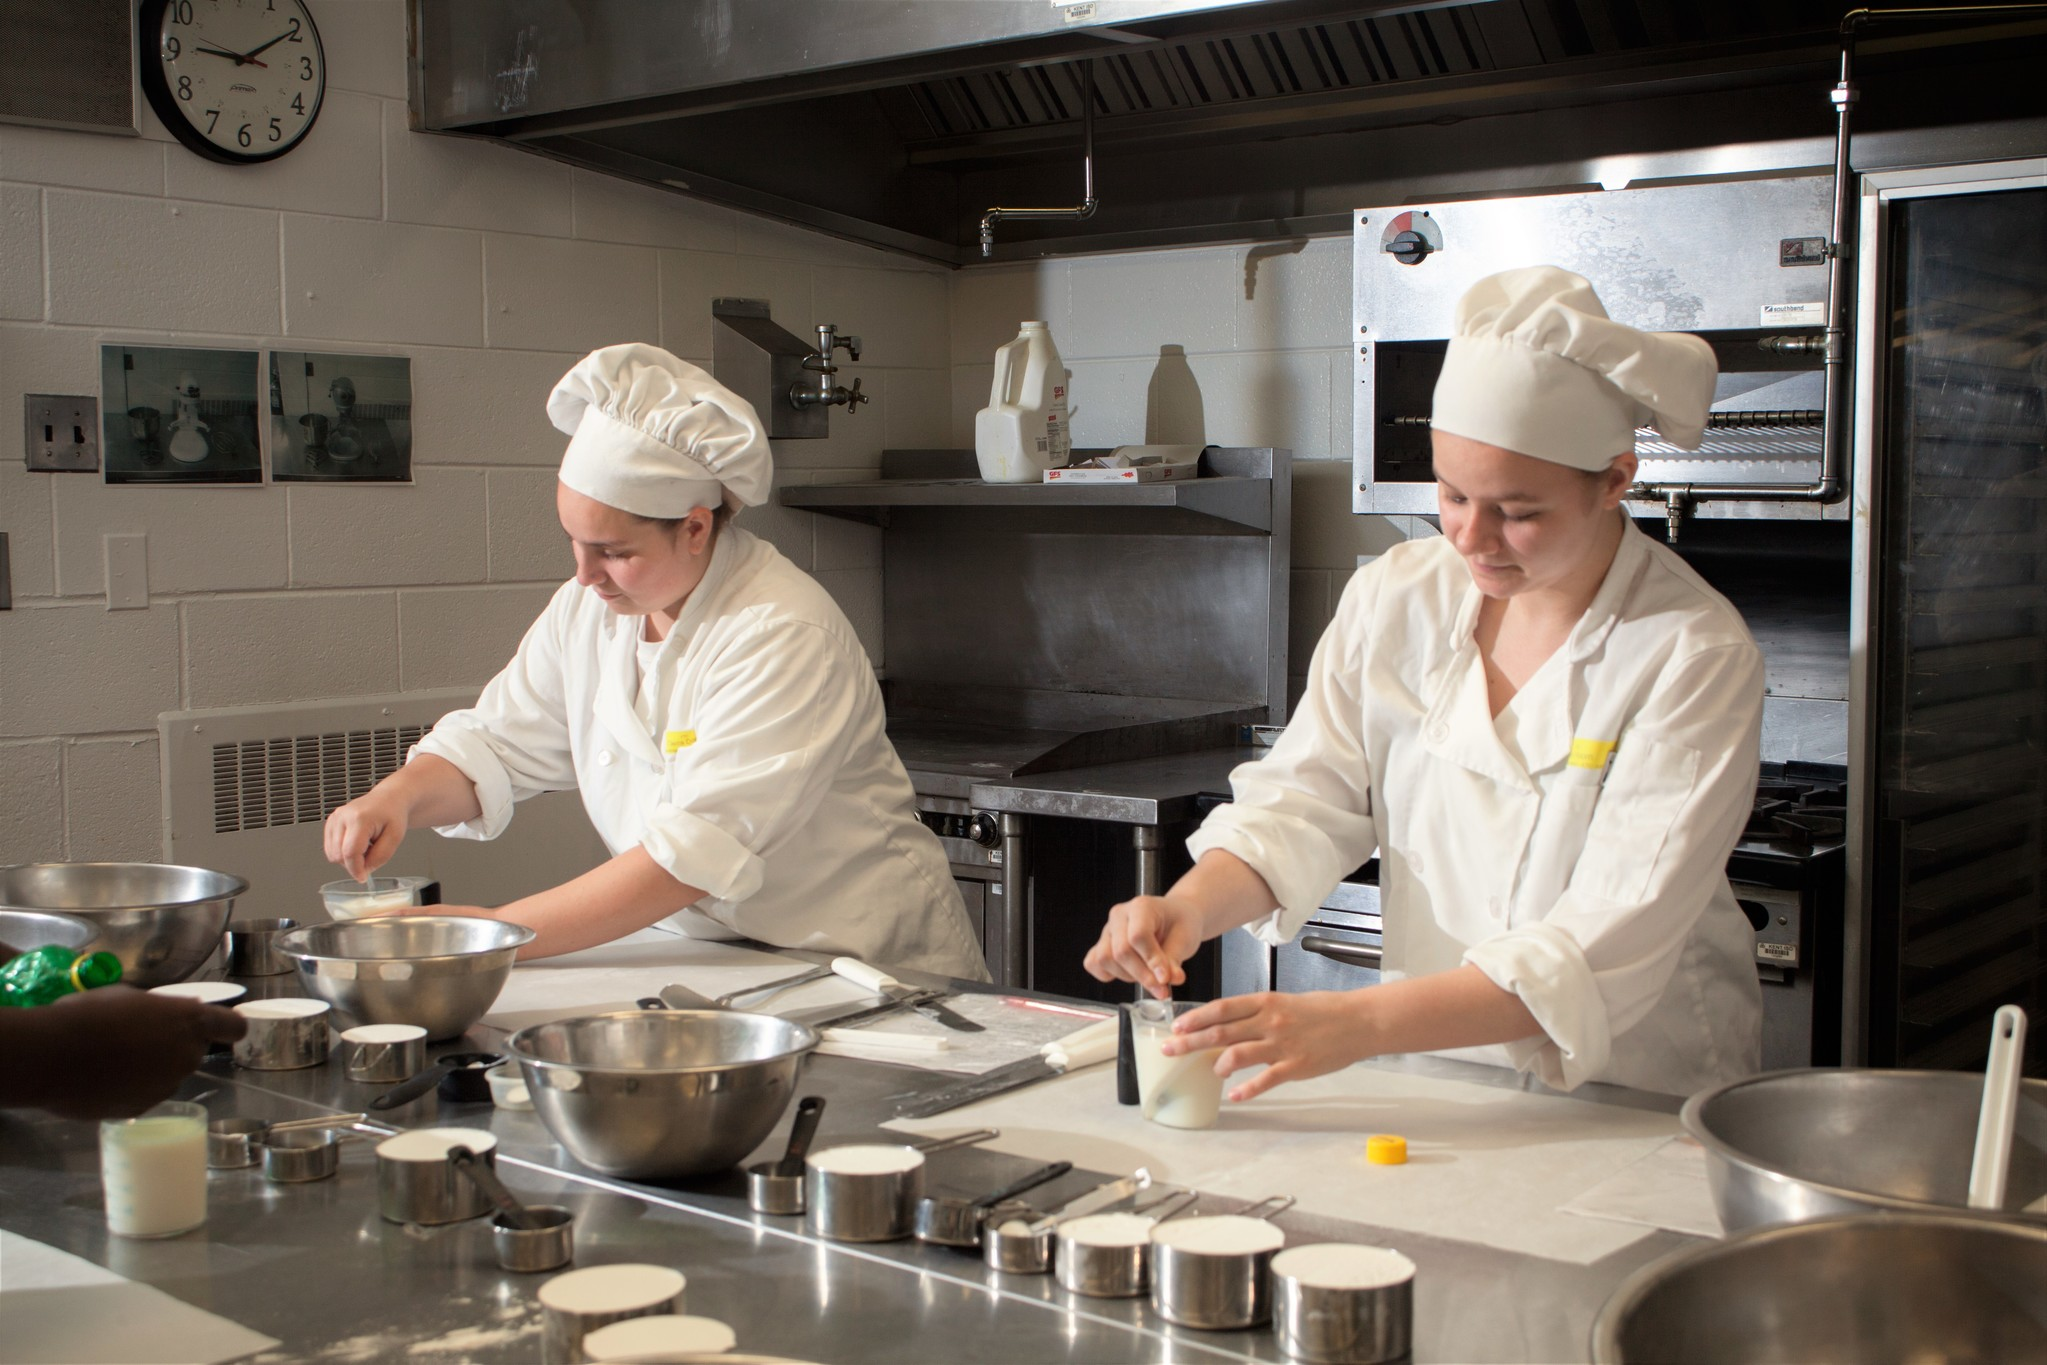 KTC Hospitality students working in kitchen